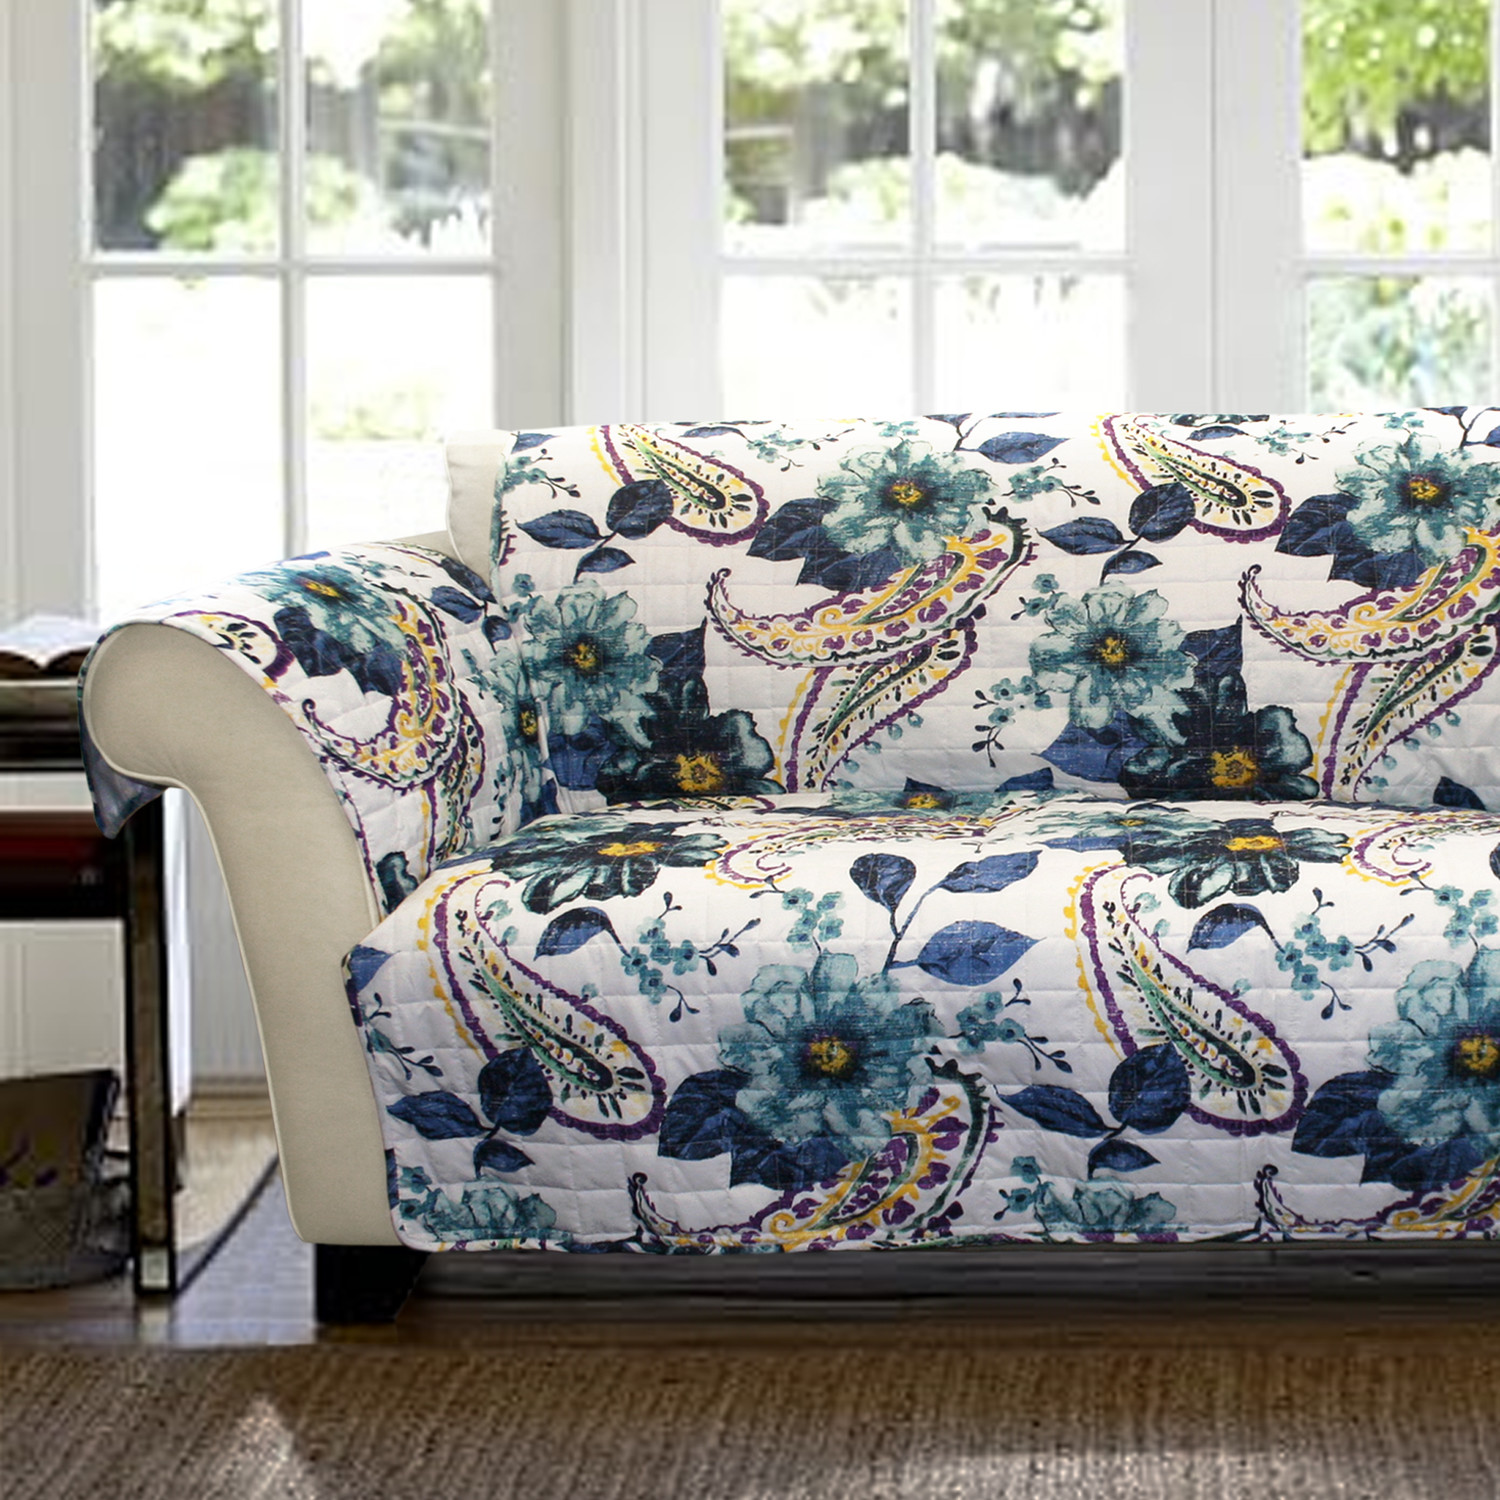 flower sofa covers beds malaga spain cover  sky industries